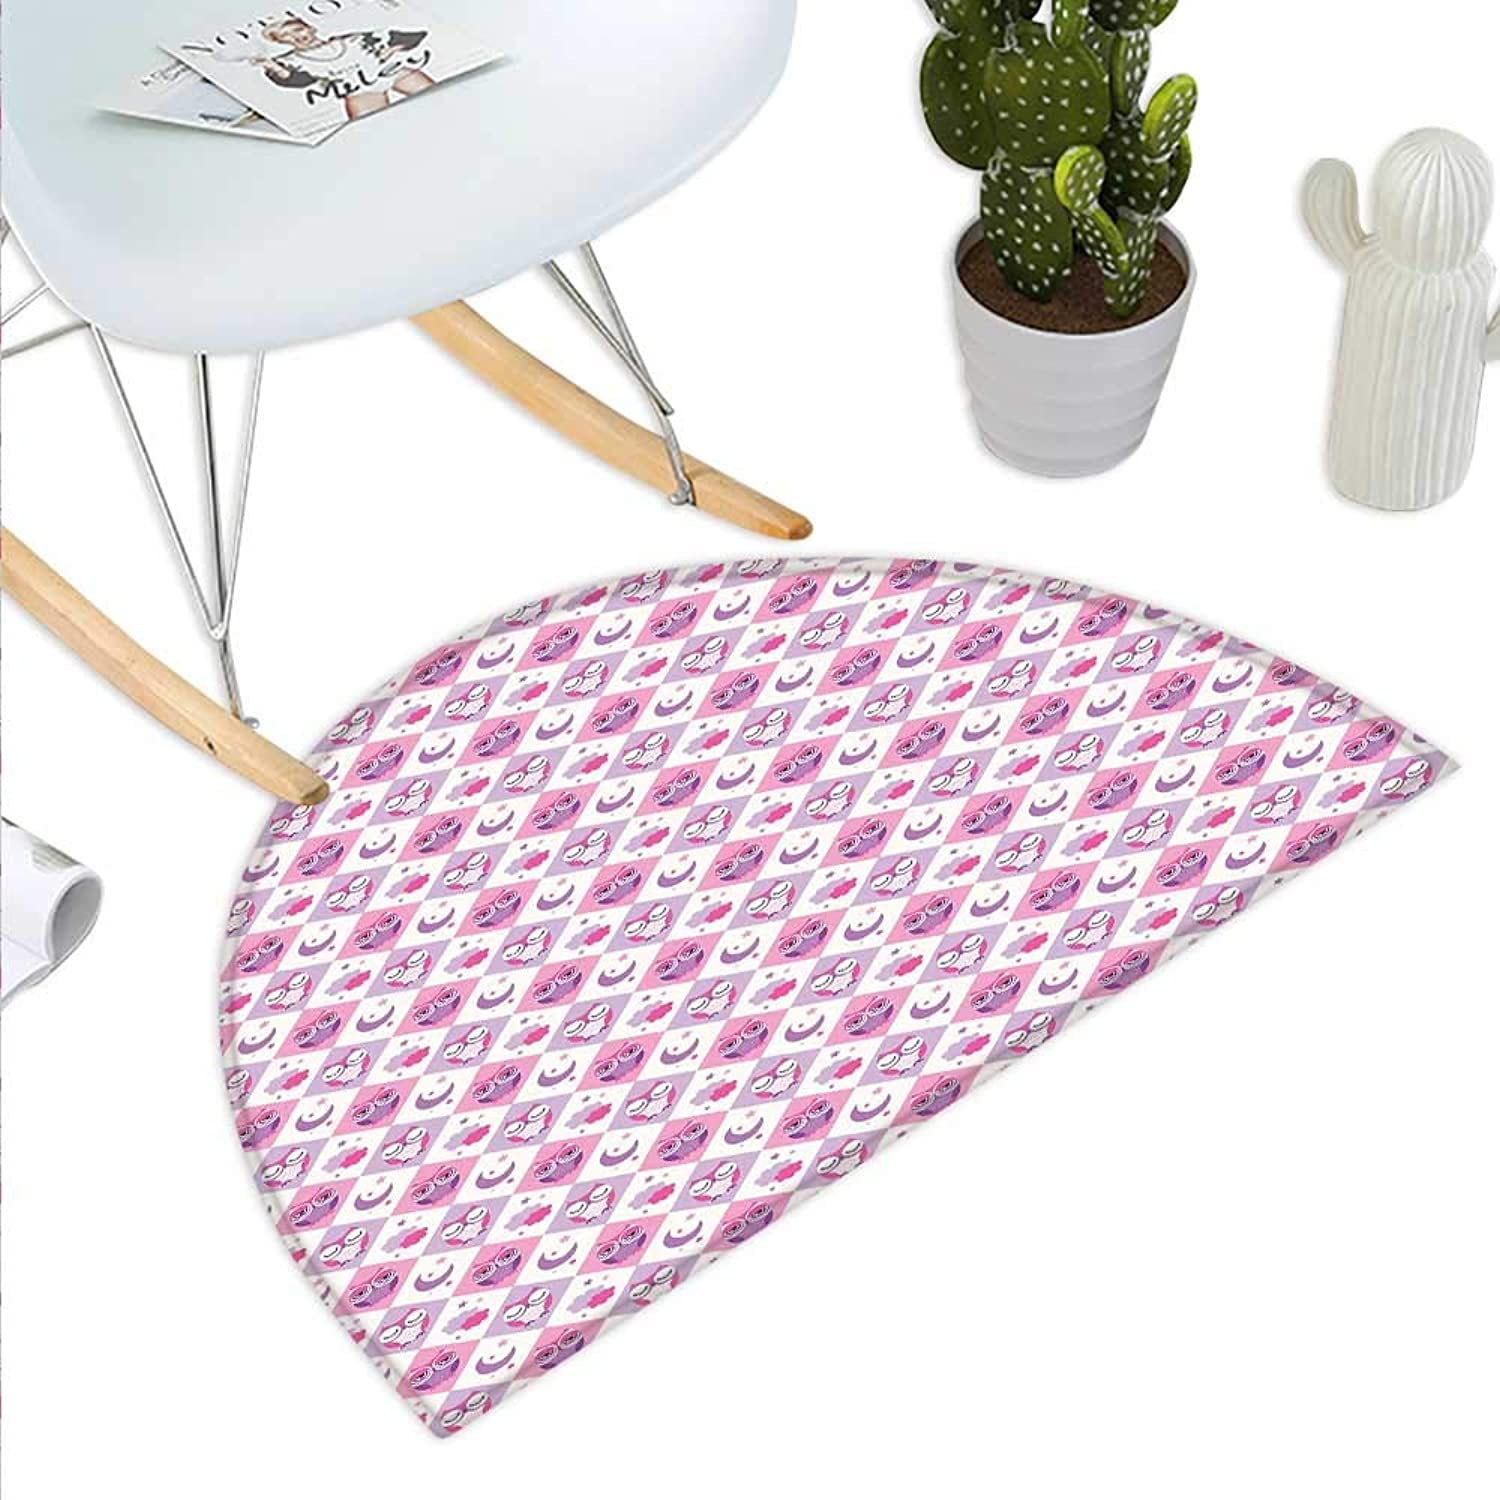 Baby Semicircle Doormat Rectangle Diamond Pattern with Funny Owls Sleeping Moons Stars and Clouds Abstract Halfmoon doormats H 43.3  xD 64.9  Purple Pink